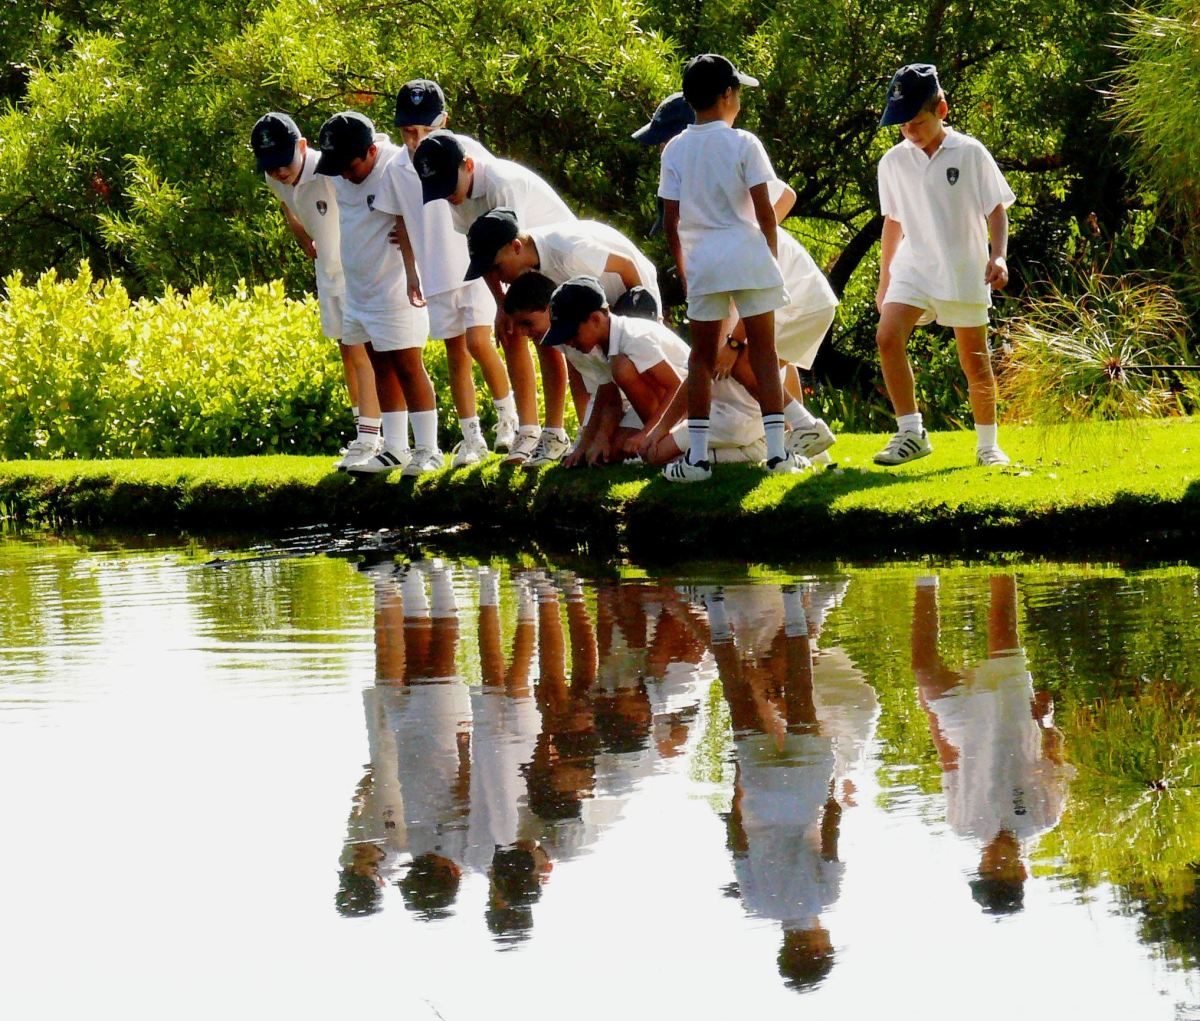 A School group at Kirstenboch Botanical Gardens in Cape Town